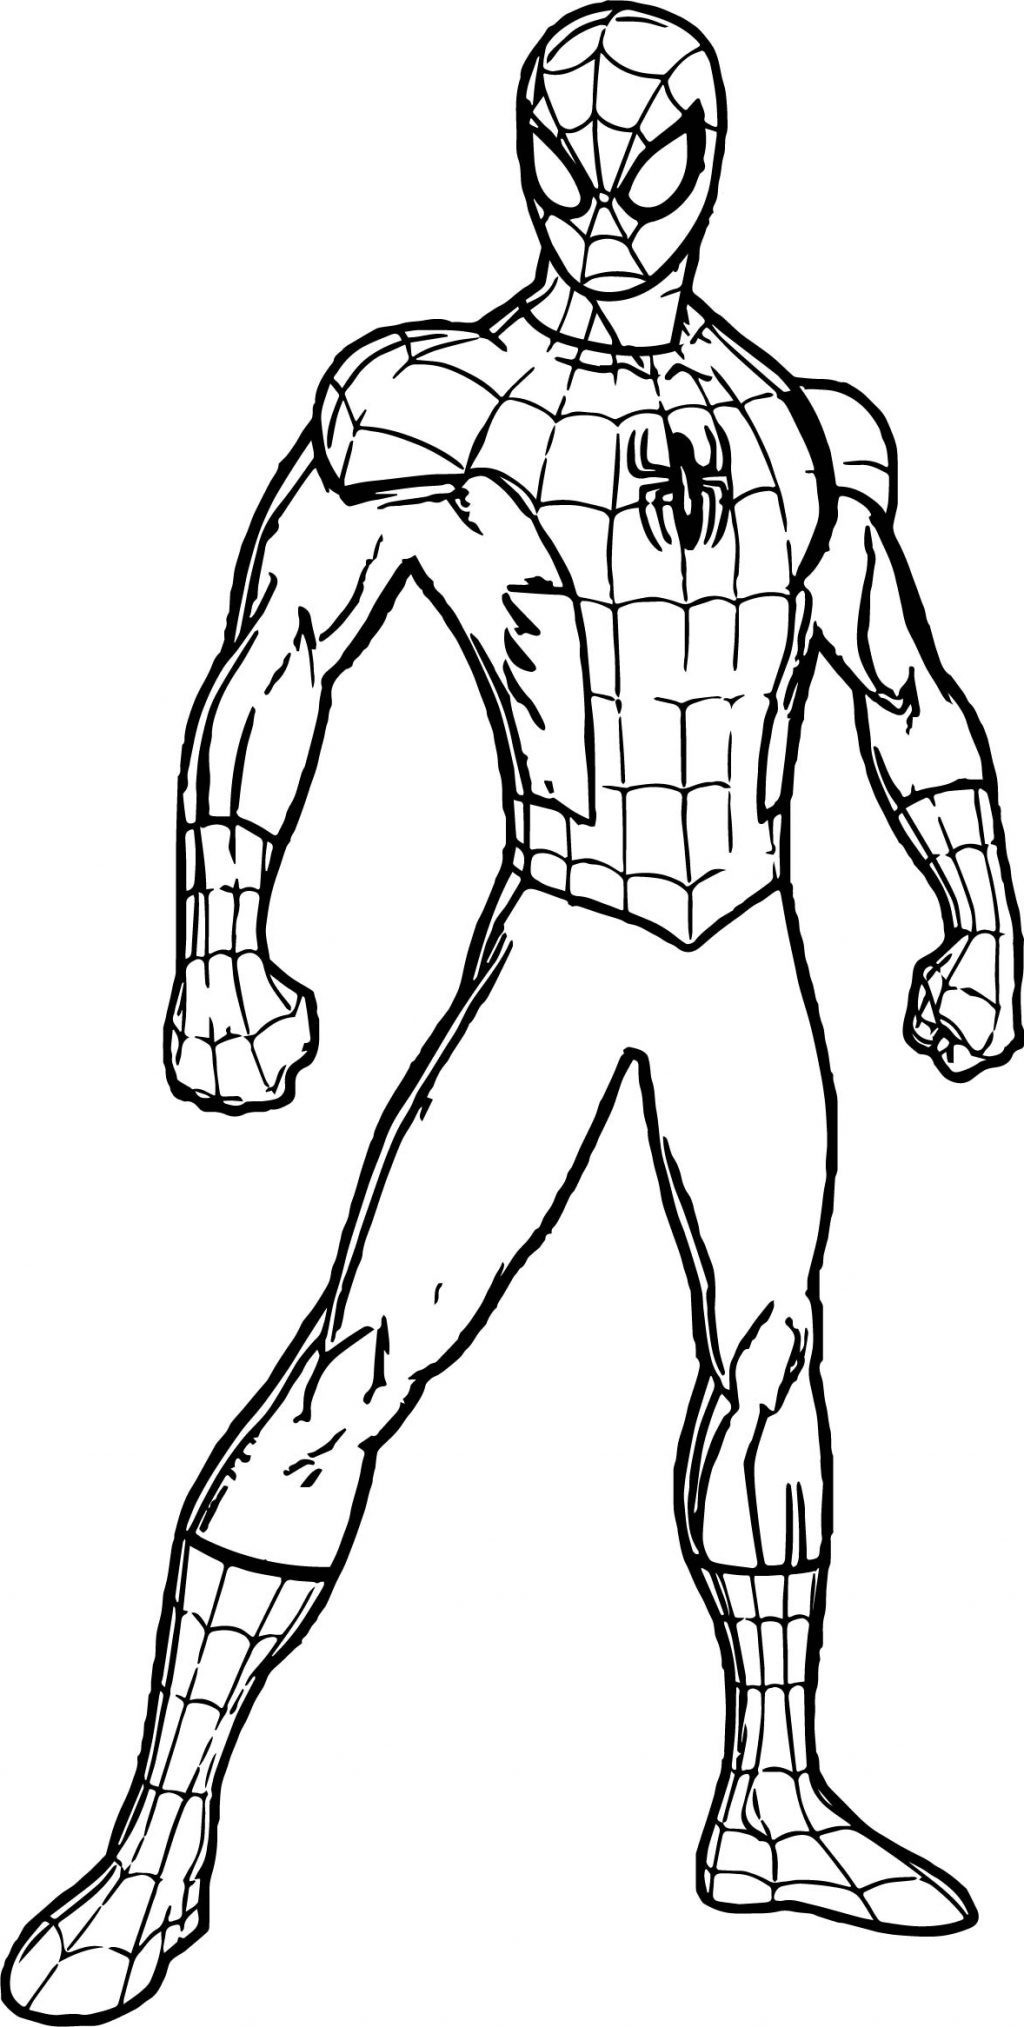 coloring spiderman spiderman coloring pages for boys educative printable spiderman coloring